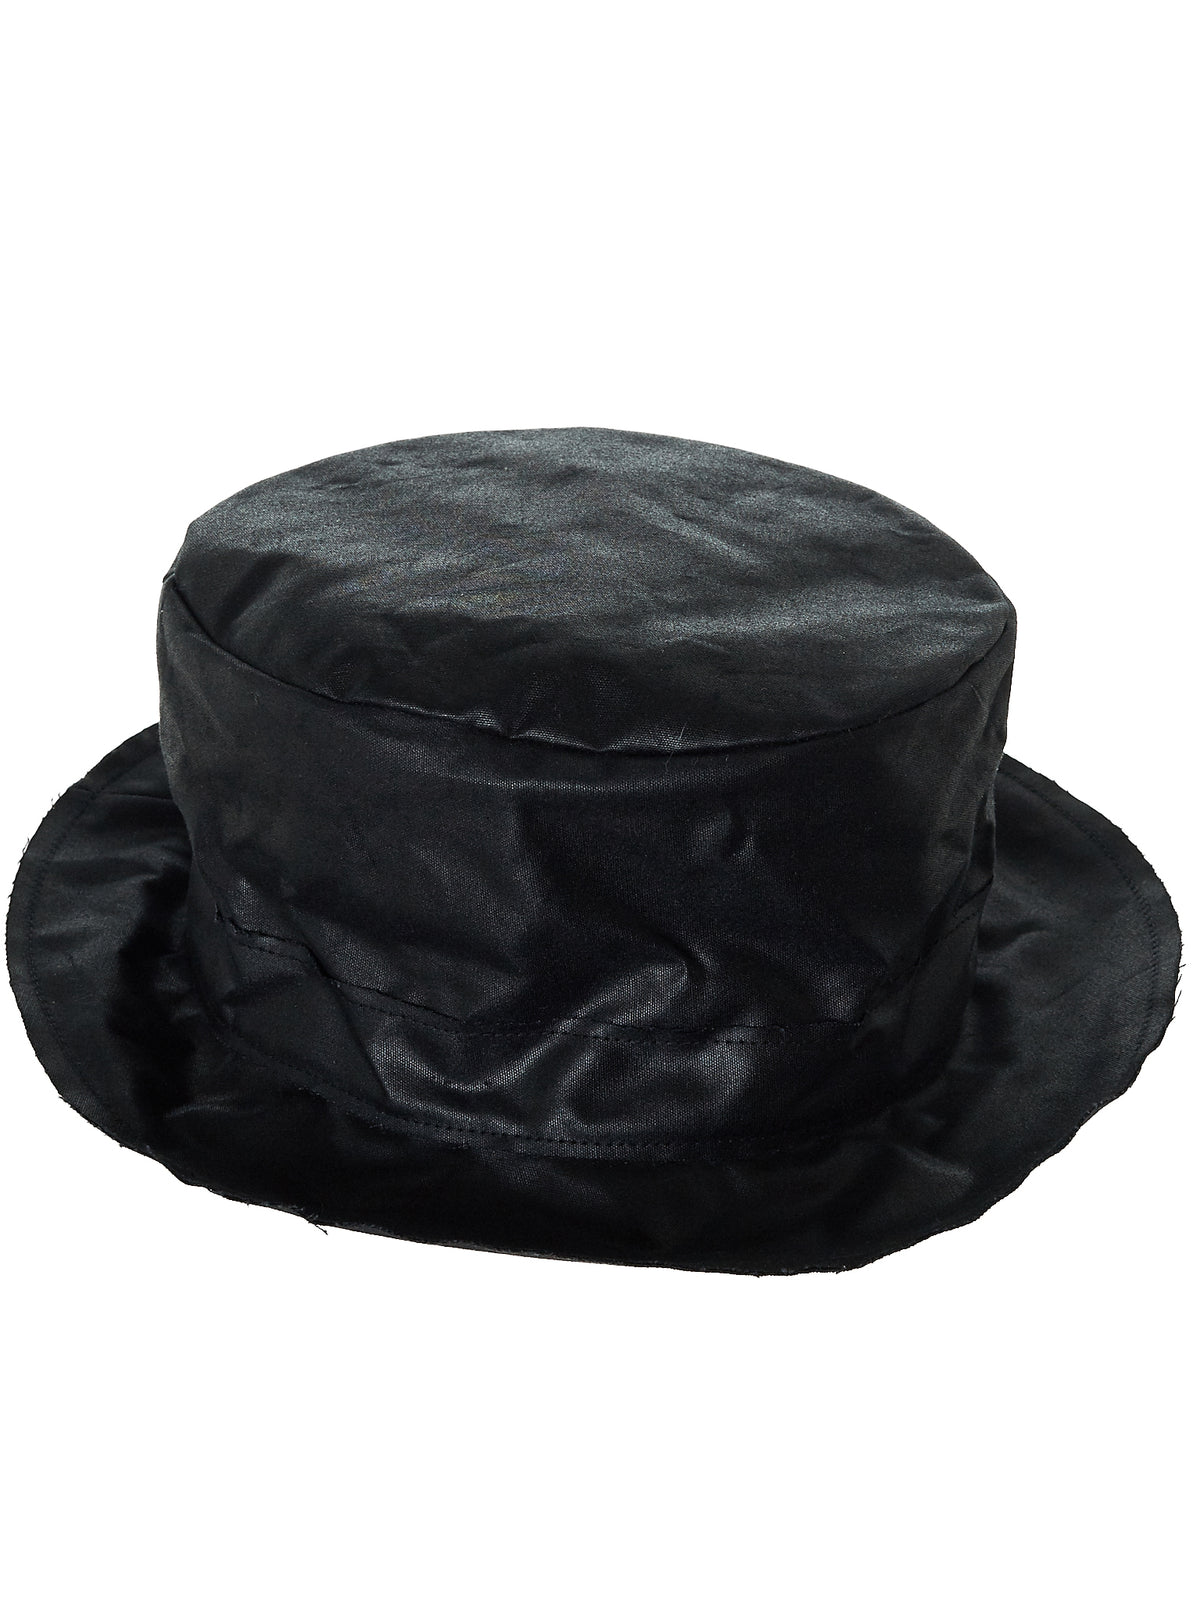 'Walk Time' Waxed Hat (WALK-TIME-BIG-WXC-MB-BLACK)